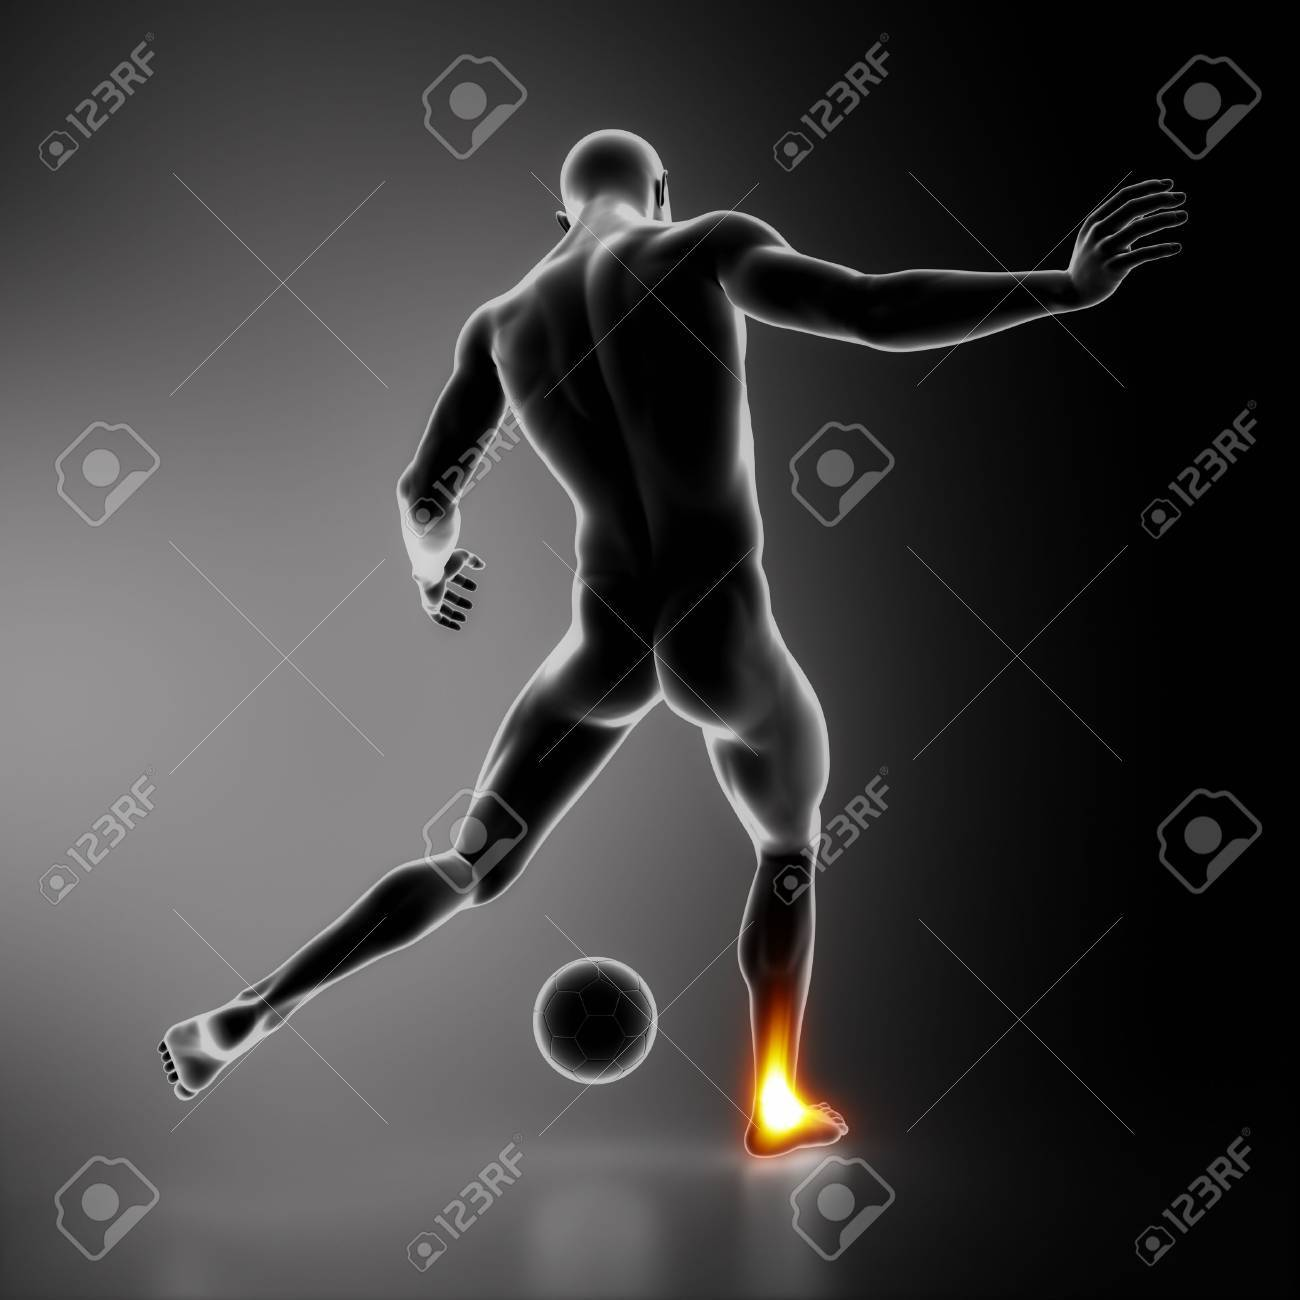 Most stressed sportsman joints ANKLE Stock Photo - 16260543